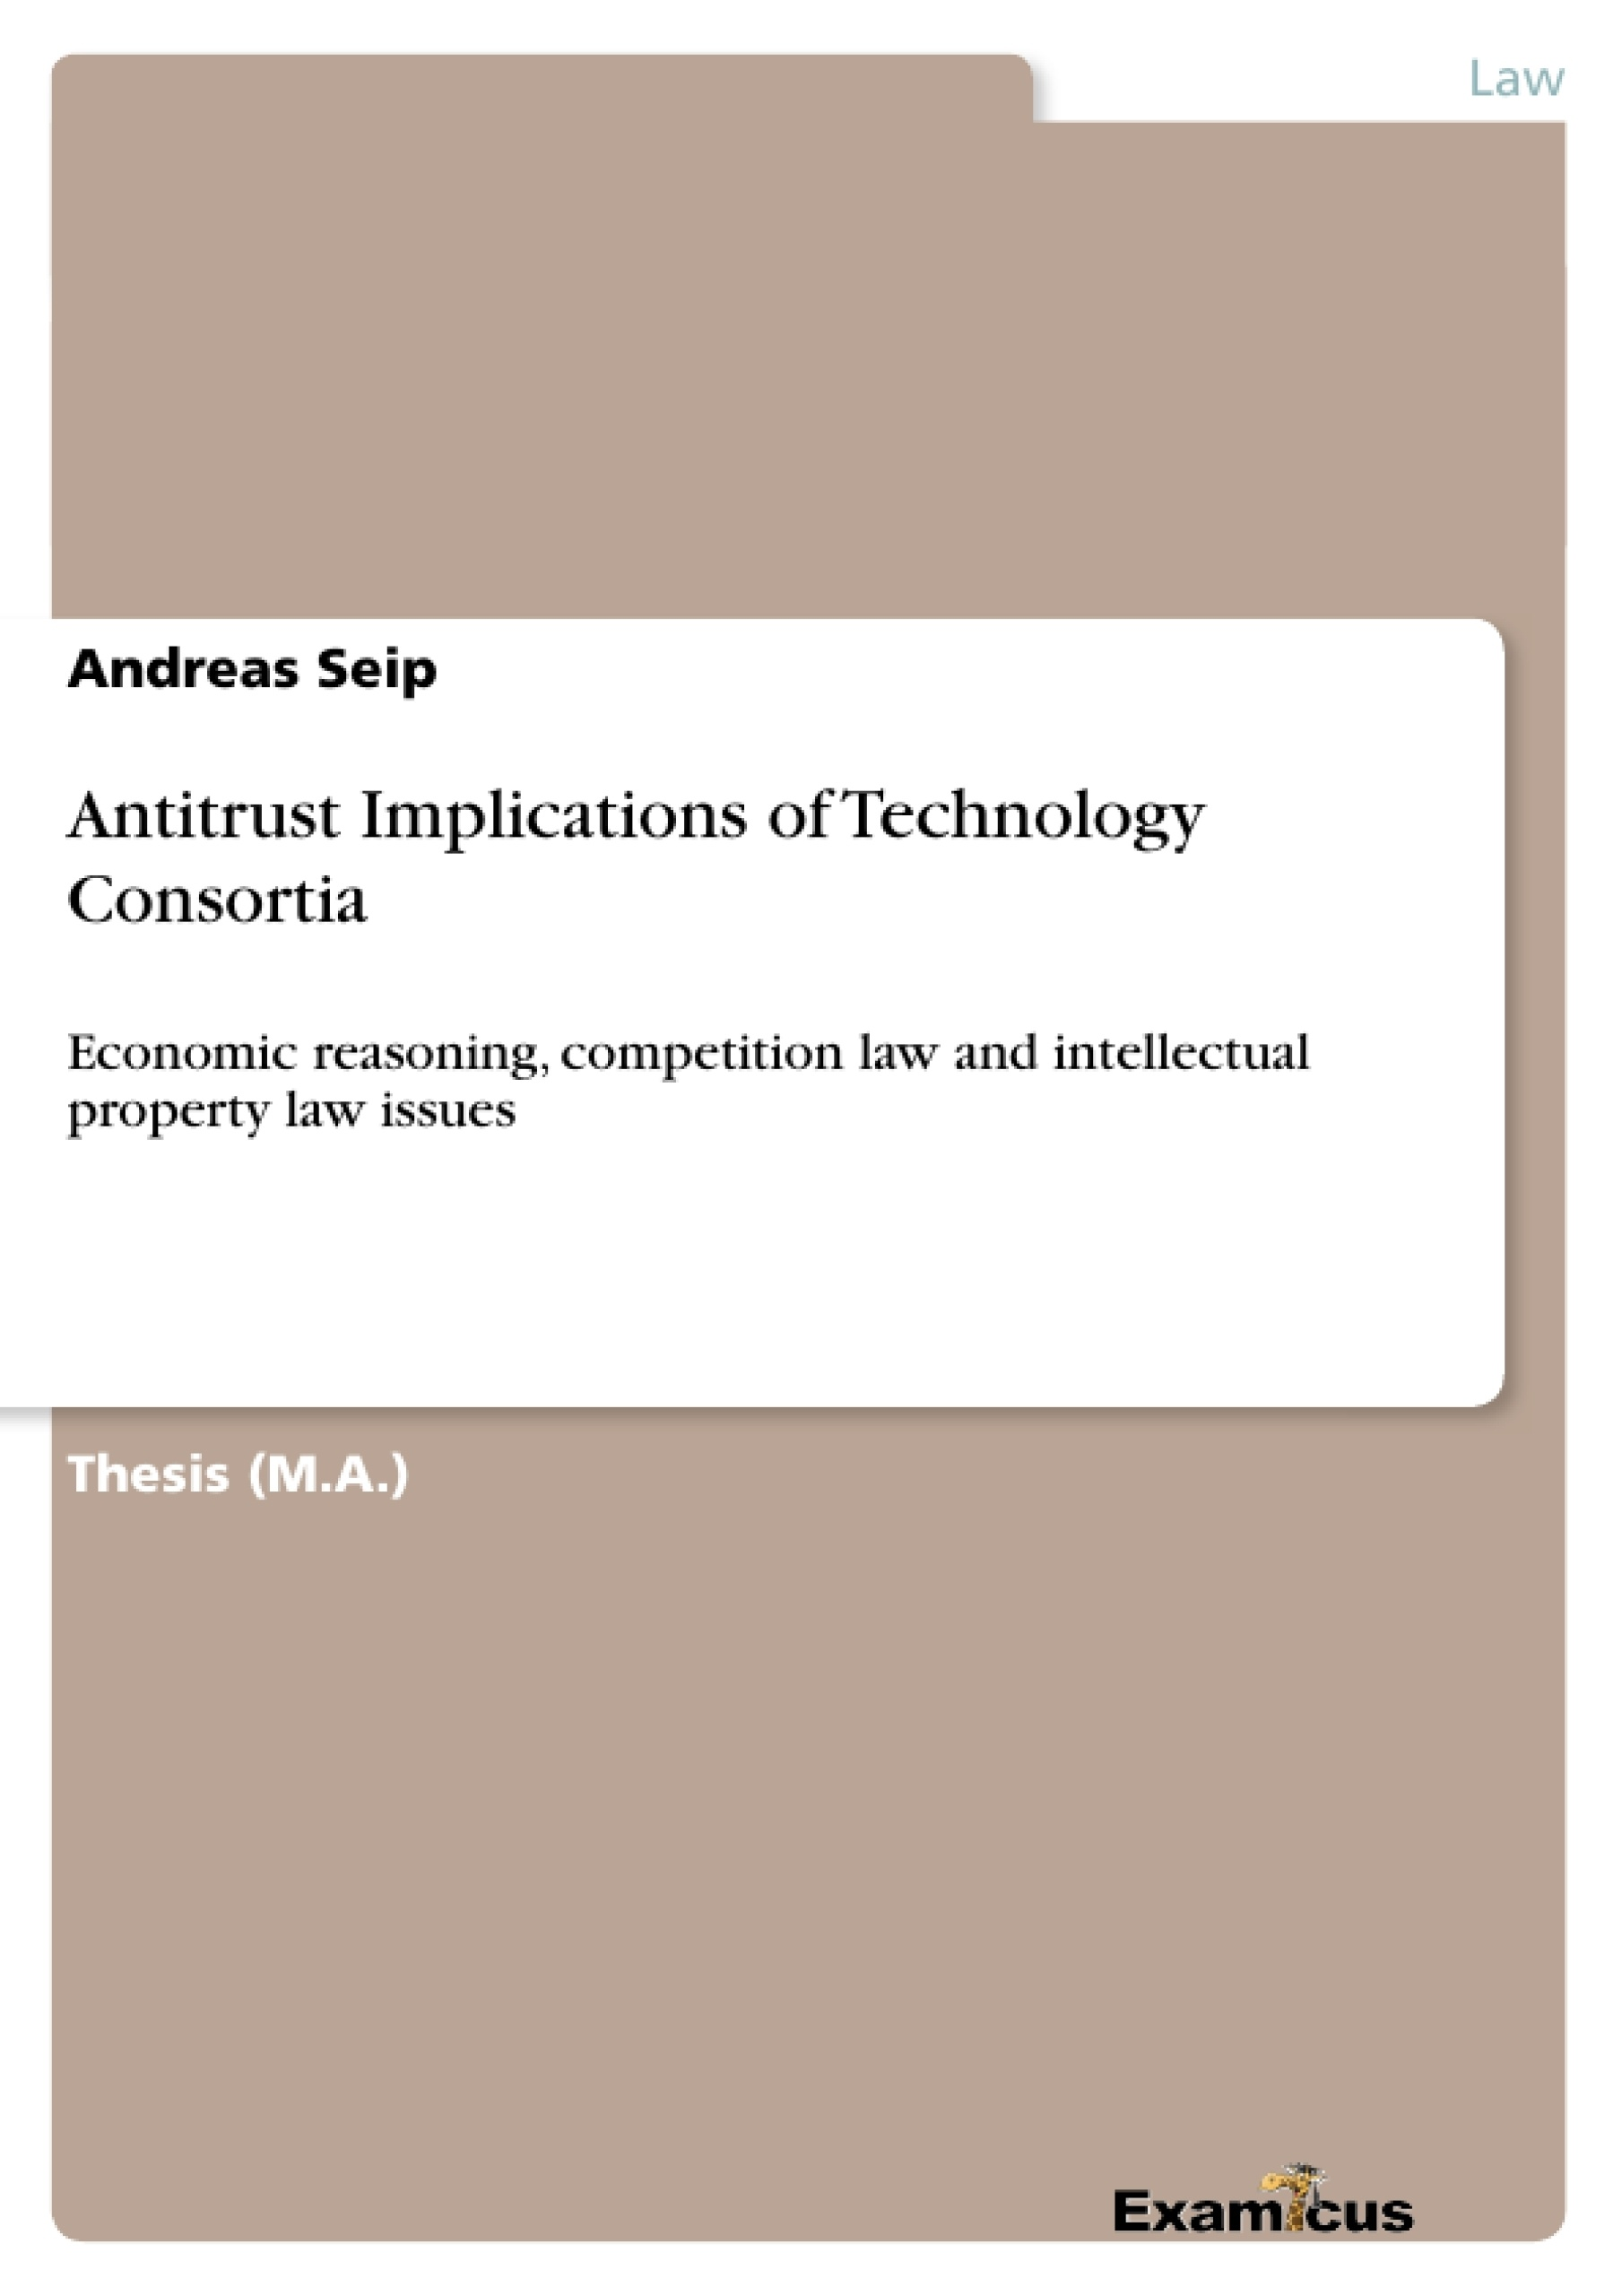 Title: Antitrust Implications of Technology Consortia